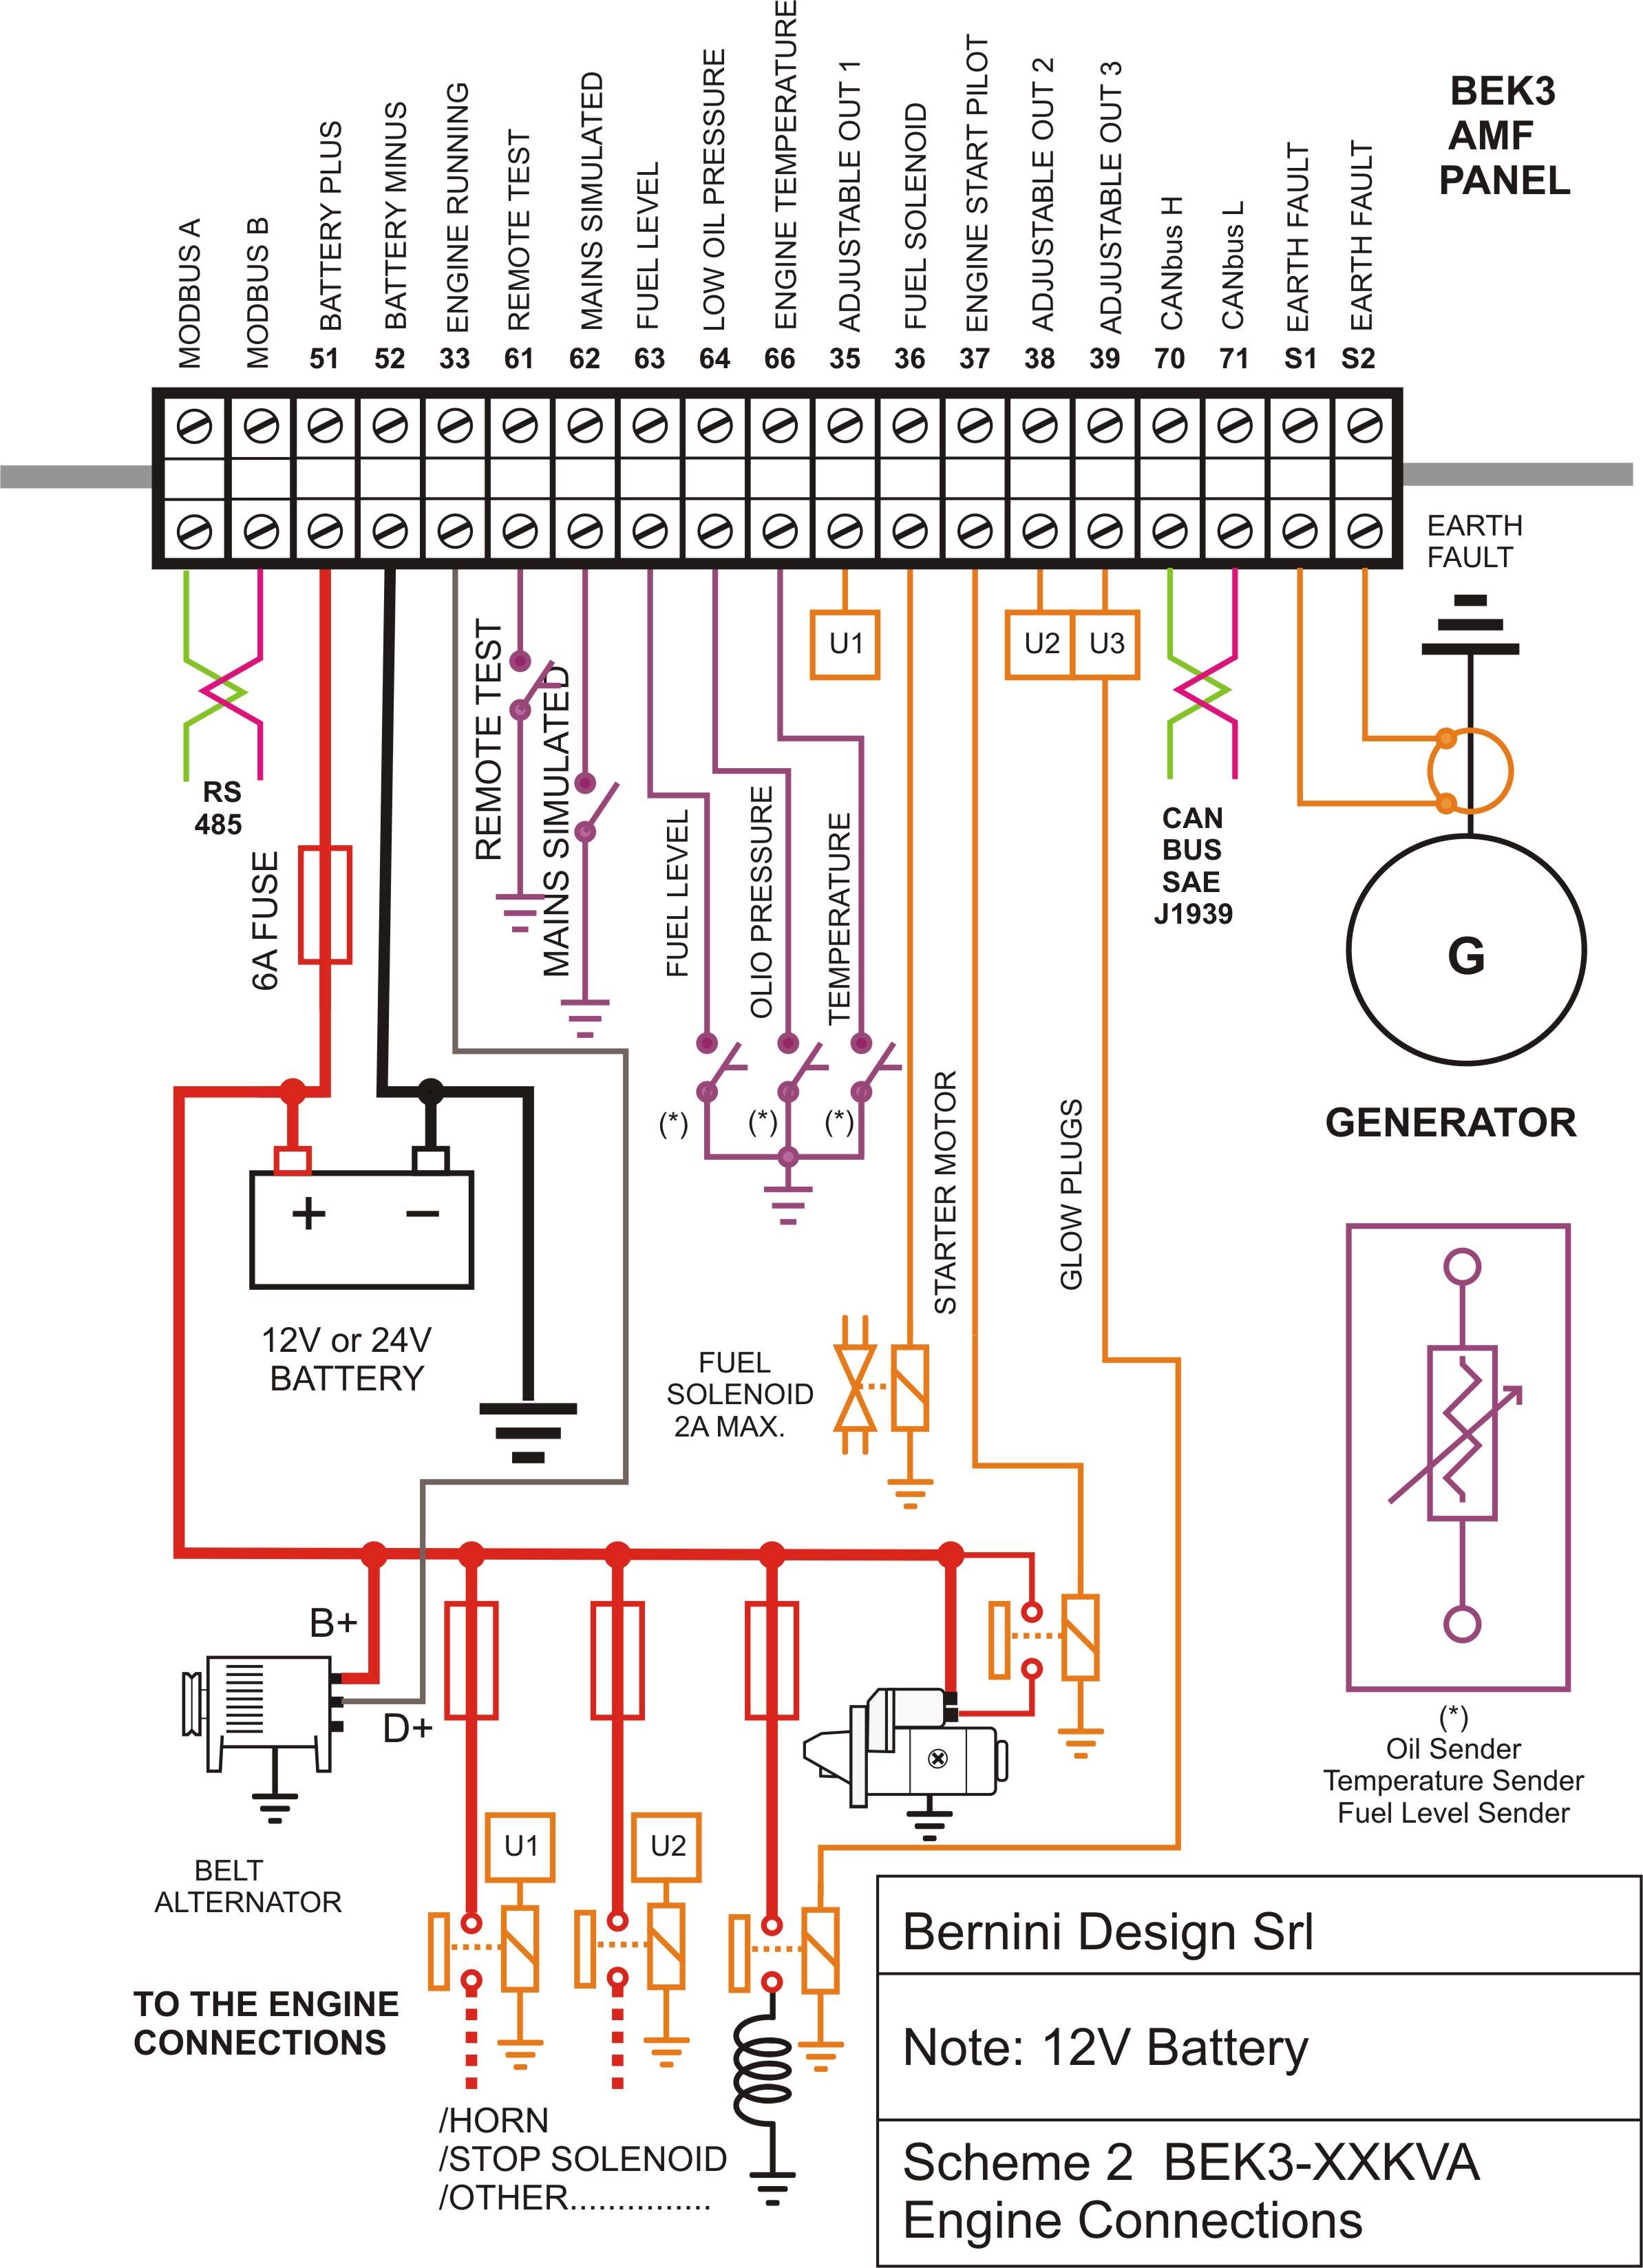 Jeep Cj7 Wiring Diagram from static-cdn.imageservice.cloud